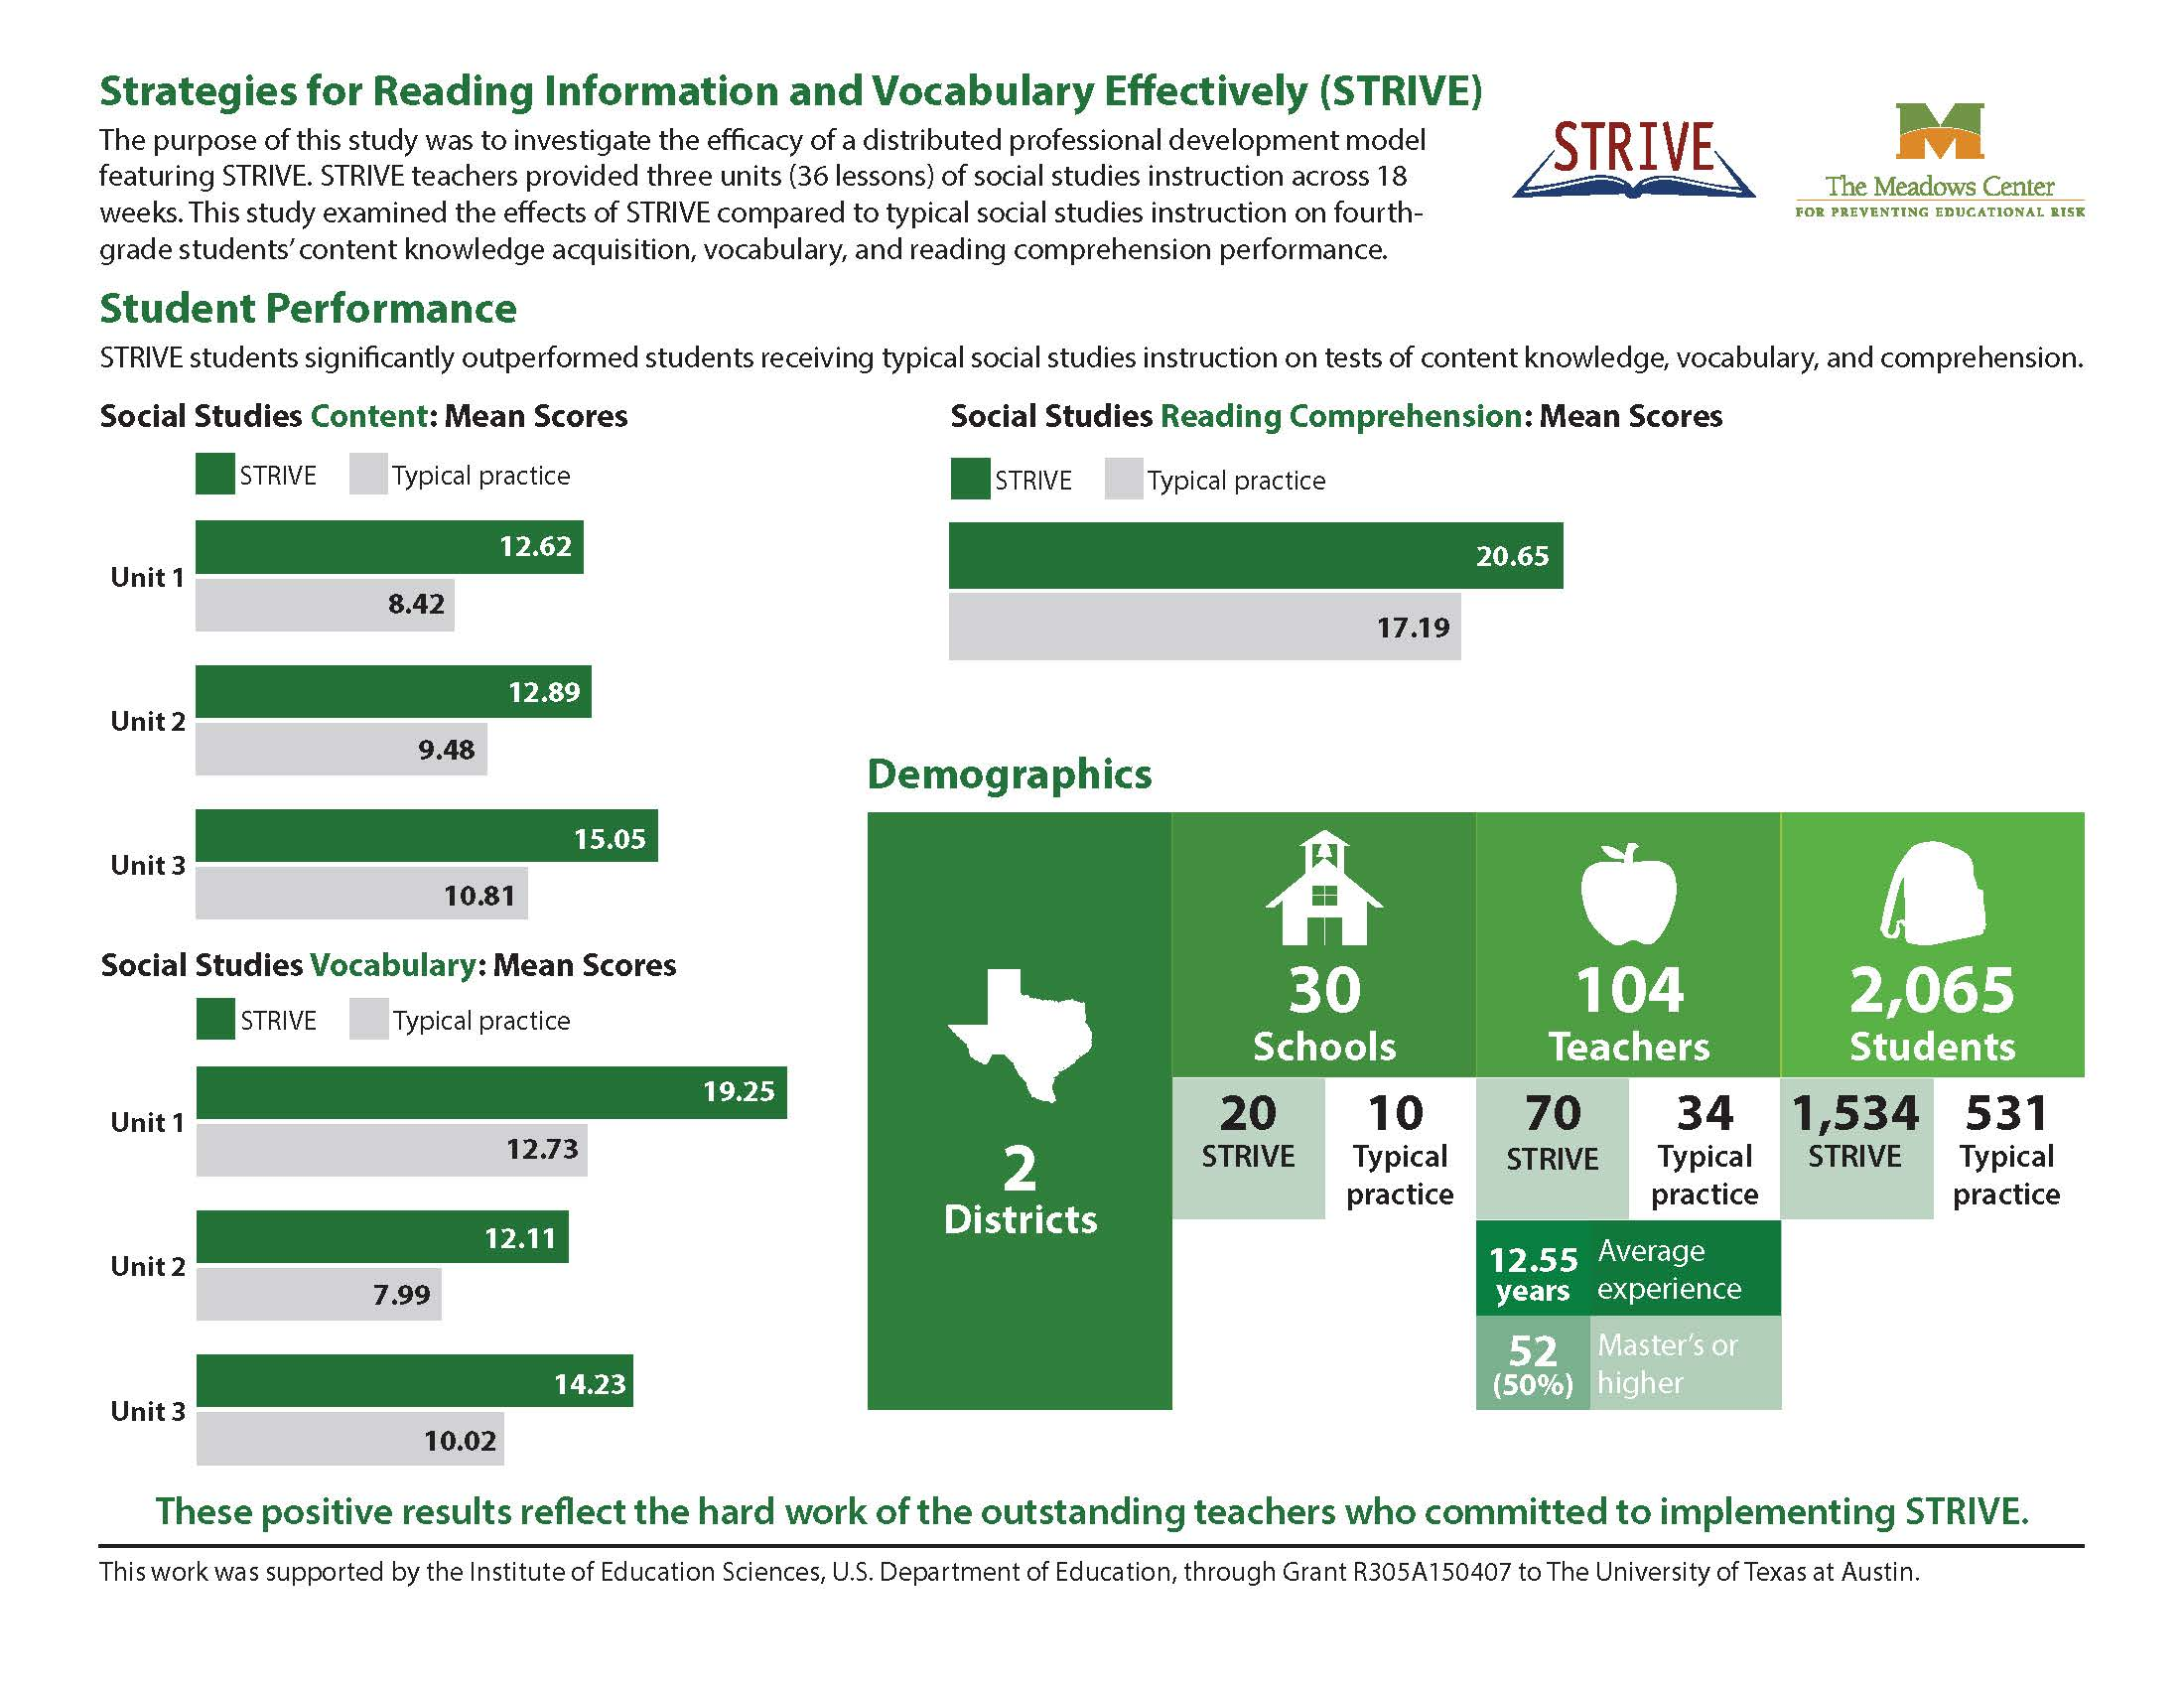 2018 Infographic showing the STRIVE's student performance, demographics, and social validity